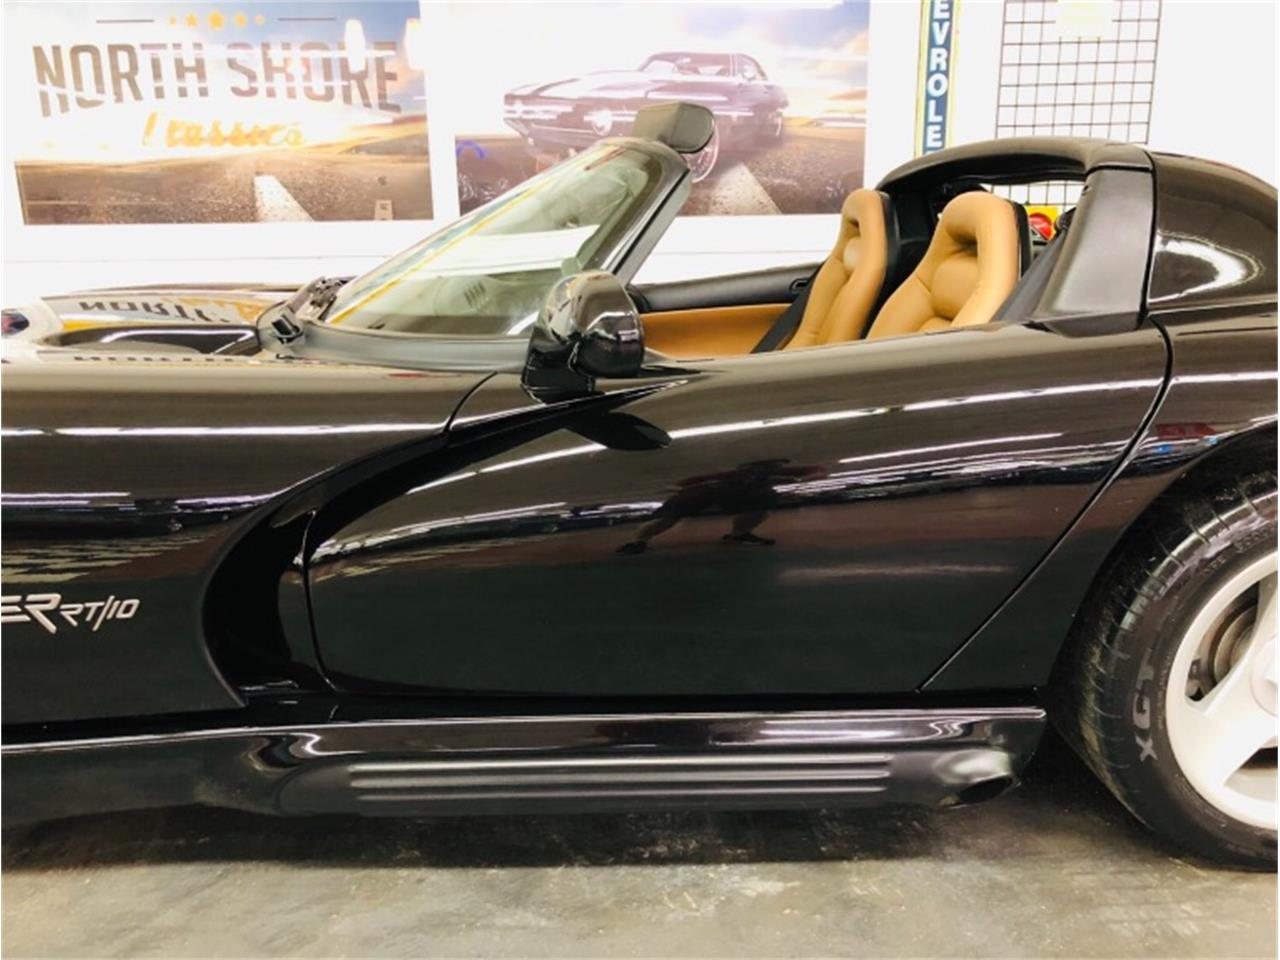 Large Picture of '95 Dodge Viper located in Mundelein Illinois - $34,807.00 - Q46X